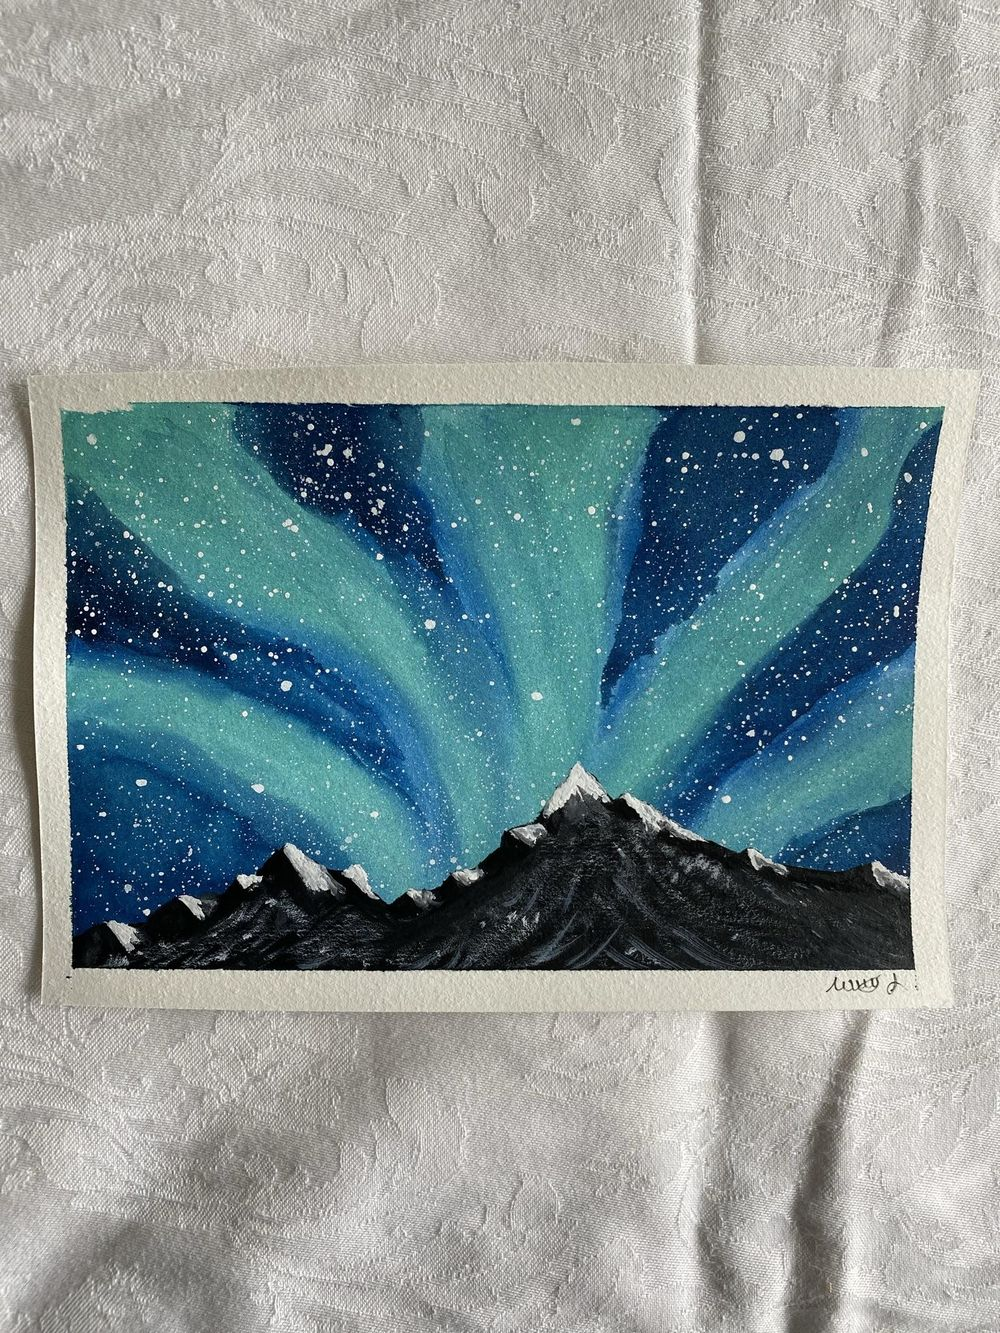 Mountains in the northern lights - image 1 - student project